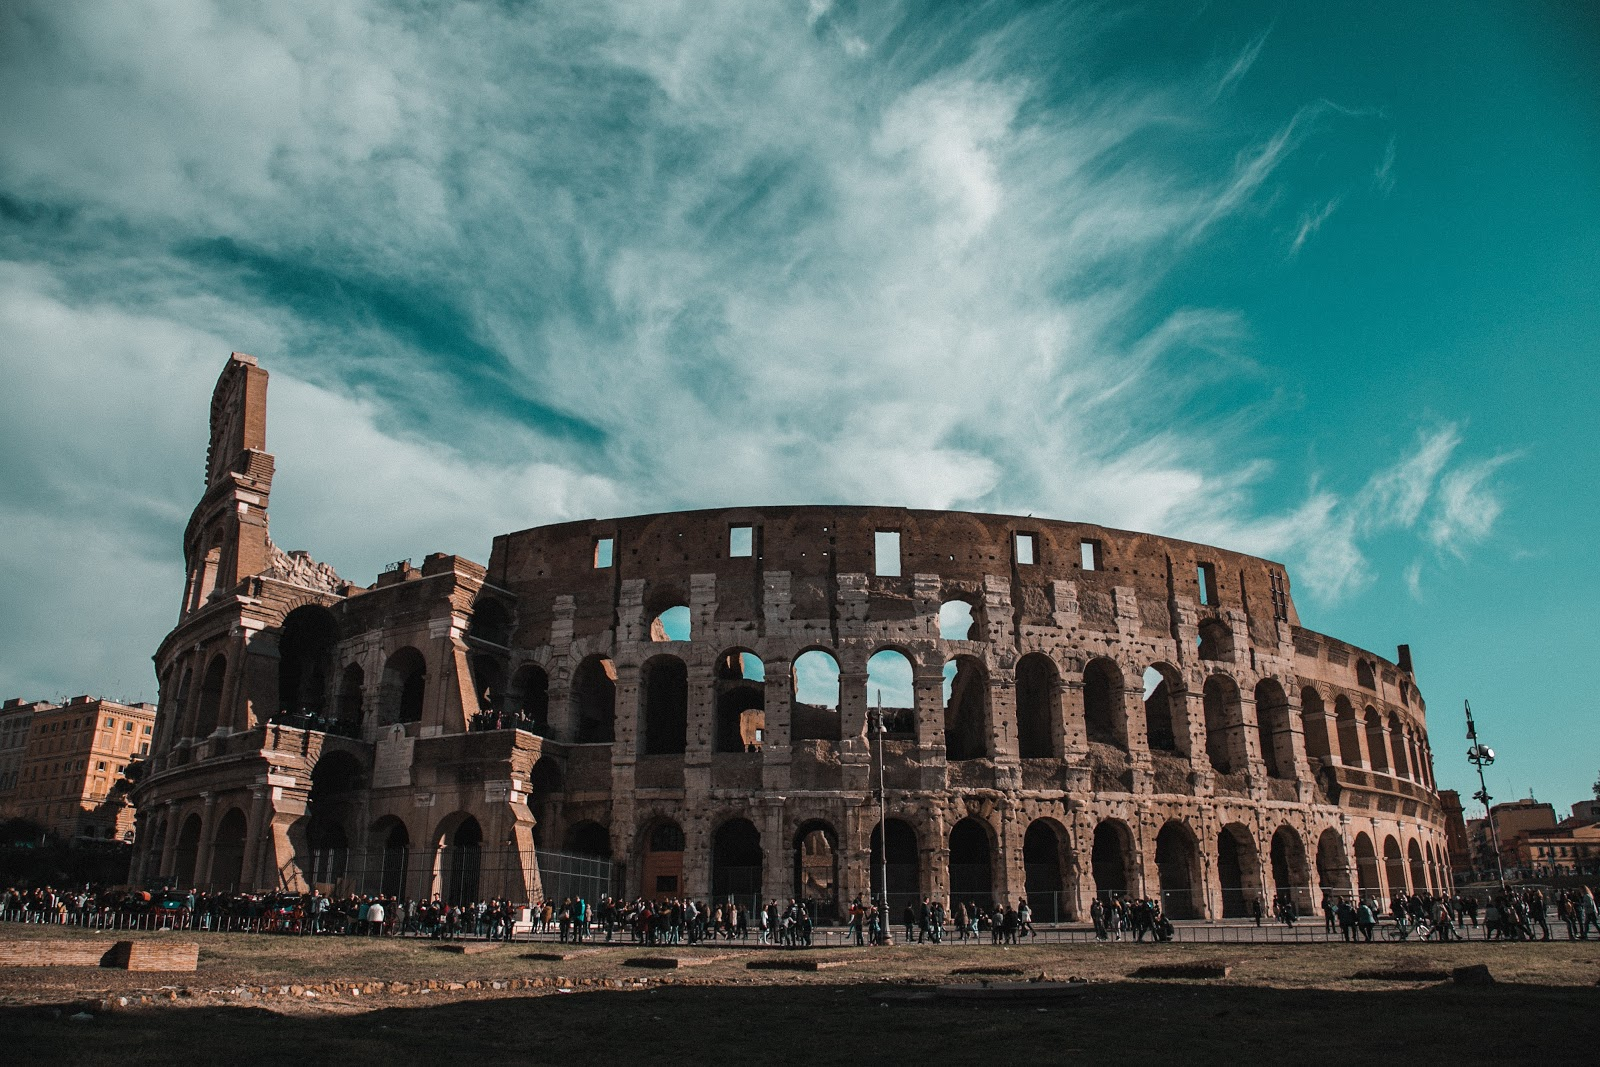 A photo of an ancient roman colosseum.